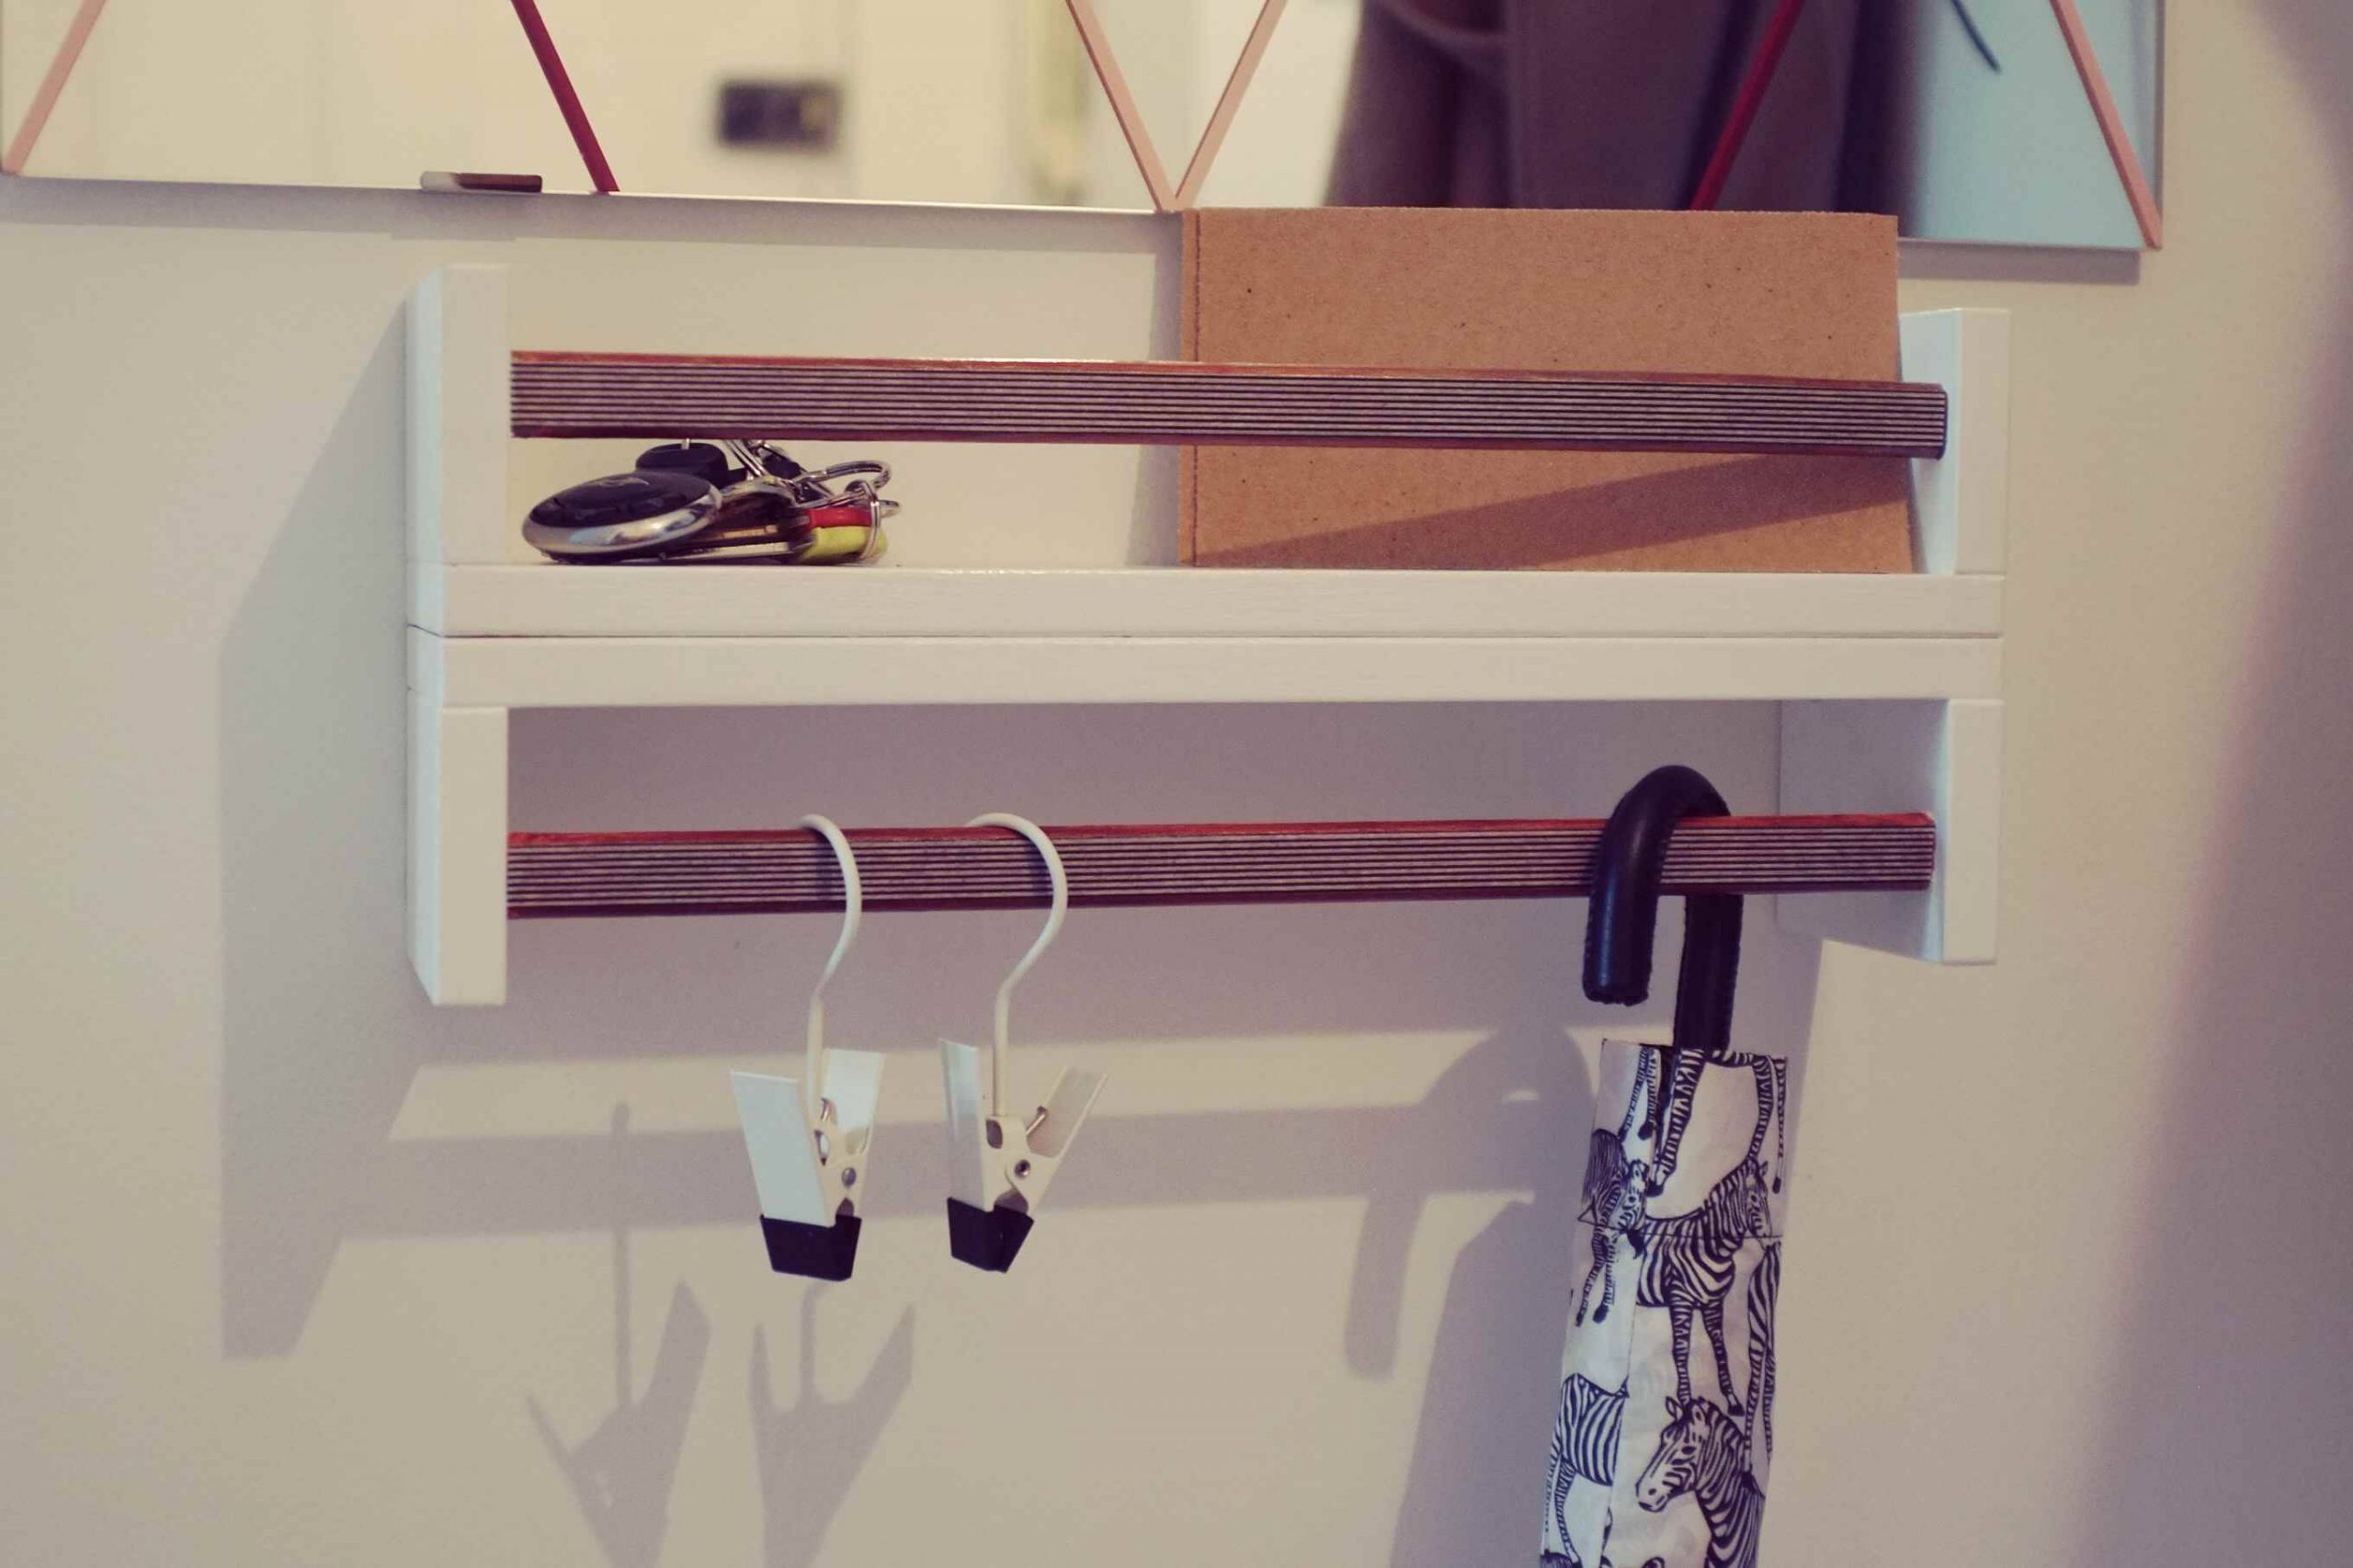 Best Of Ikea Mail organizer Awesome 15 Ikea Hacks for Small Entryways